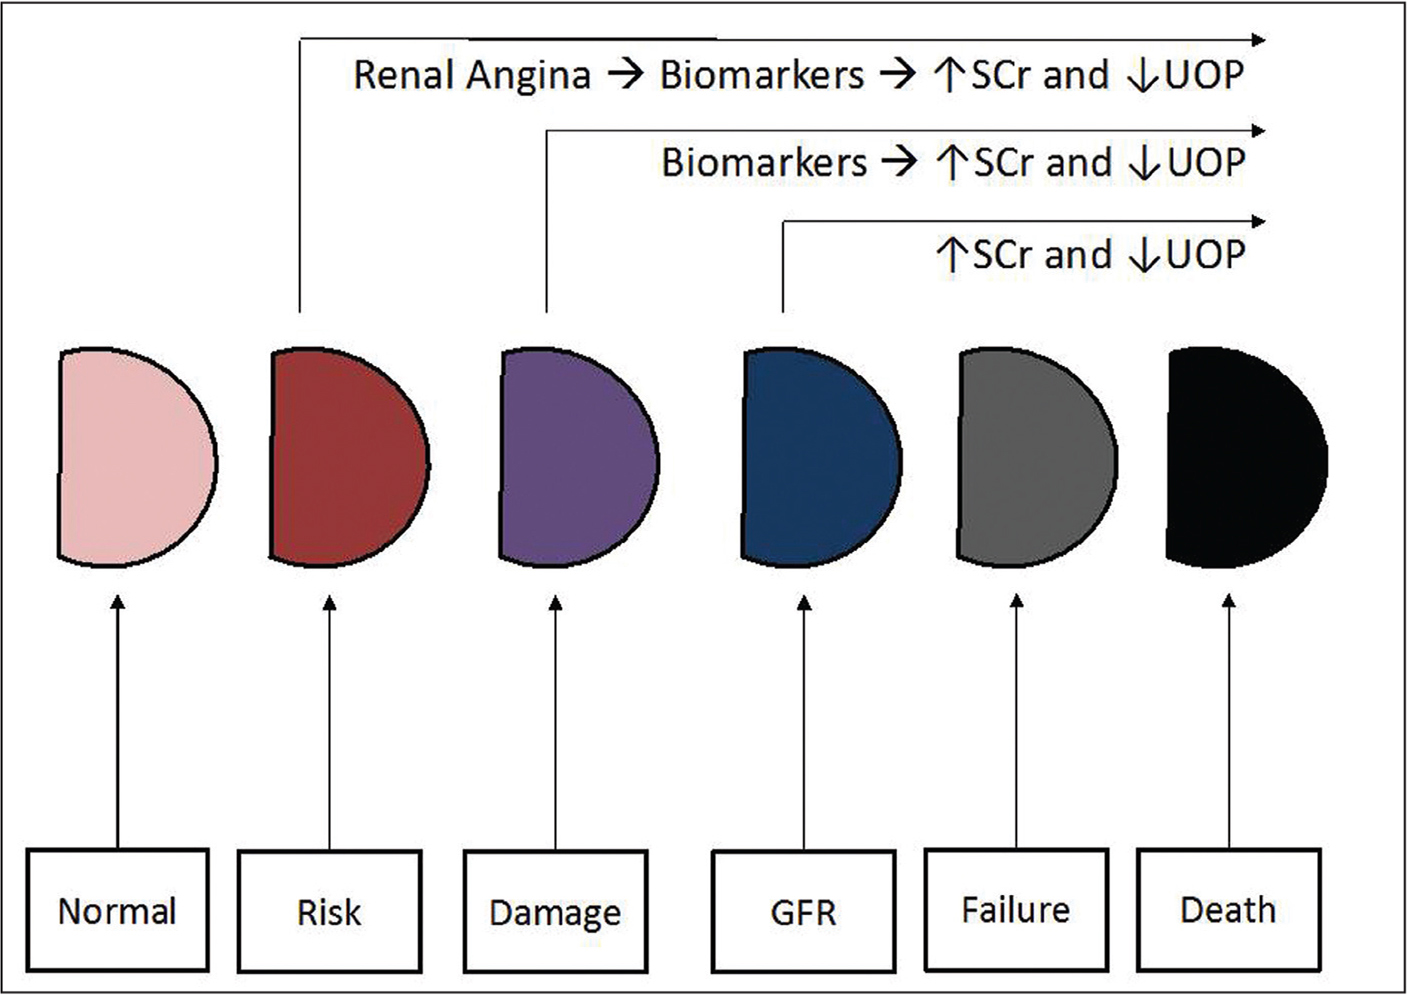 In the timeline of kidney injury, changes in SCr and UOP are late. Biomarker changes may detect incipient injury before changes in GFR can be detected. Renal angina may identify patients at risk even earlier. GFR, glomerular filtration rate; SCr, serum creatinine; UOP, urine output.